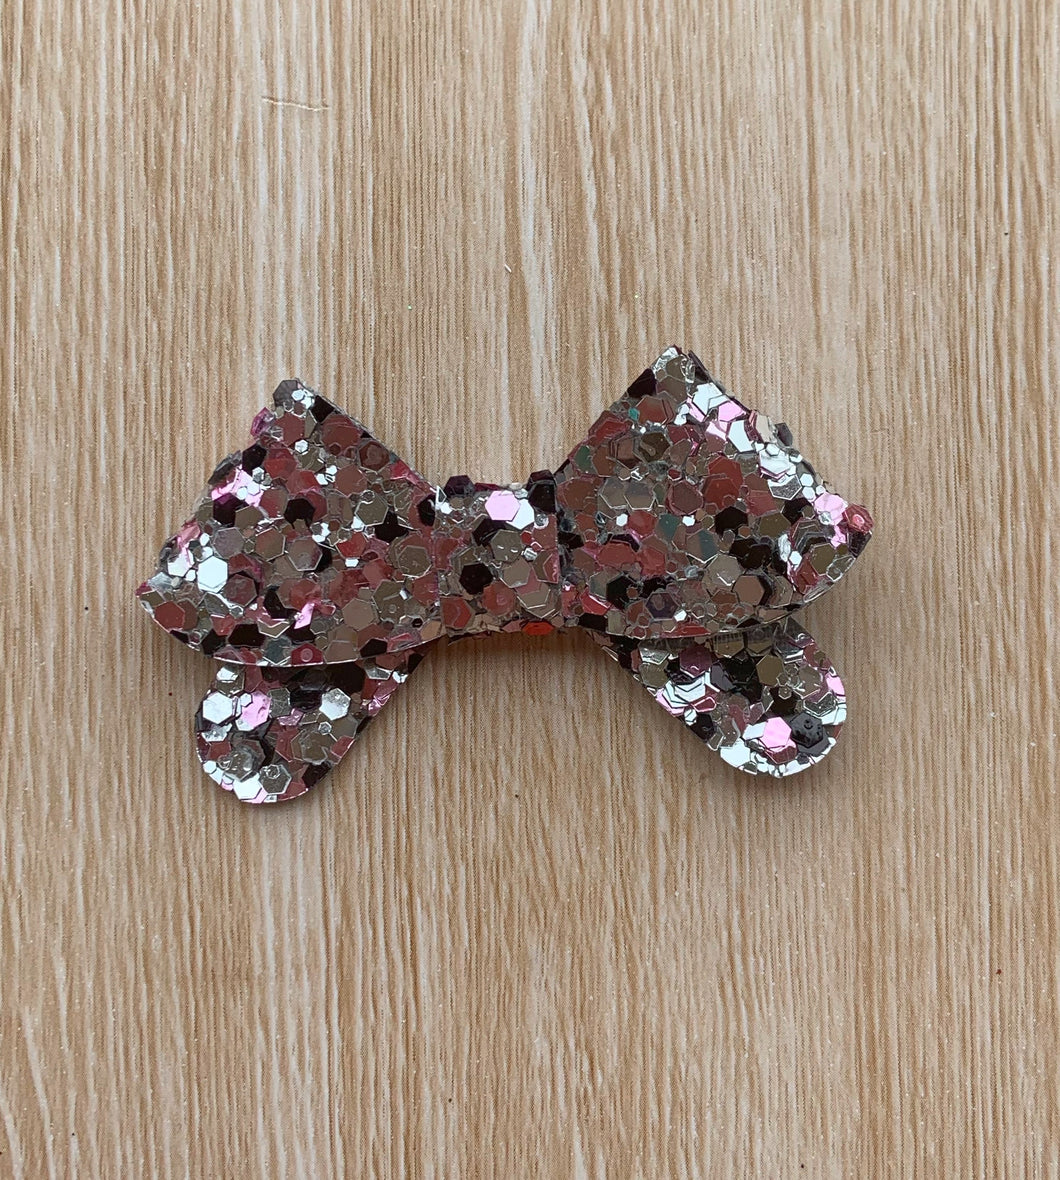 Bow27 glitter bow, leatherette bow, fringe clip, butterfly bow, personalised bow, rainbow bow, dolly hair bow, floral bow, shimmer bow, pretty bow , Bow Handmade Hairbow, handmade hair accessories, Sweet Adalyn Sweet Adalyn